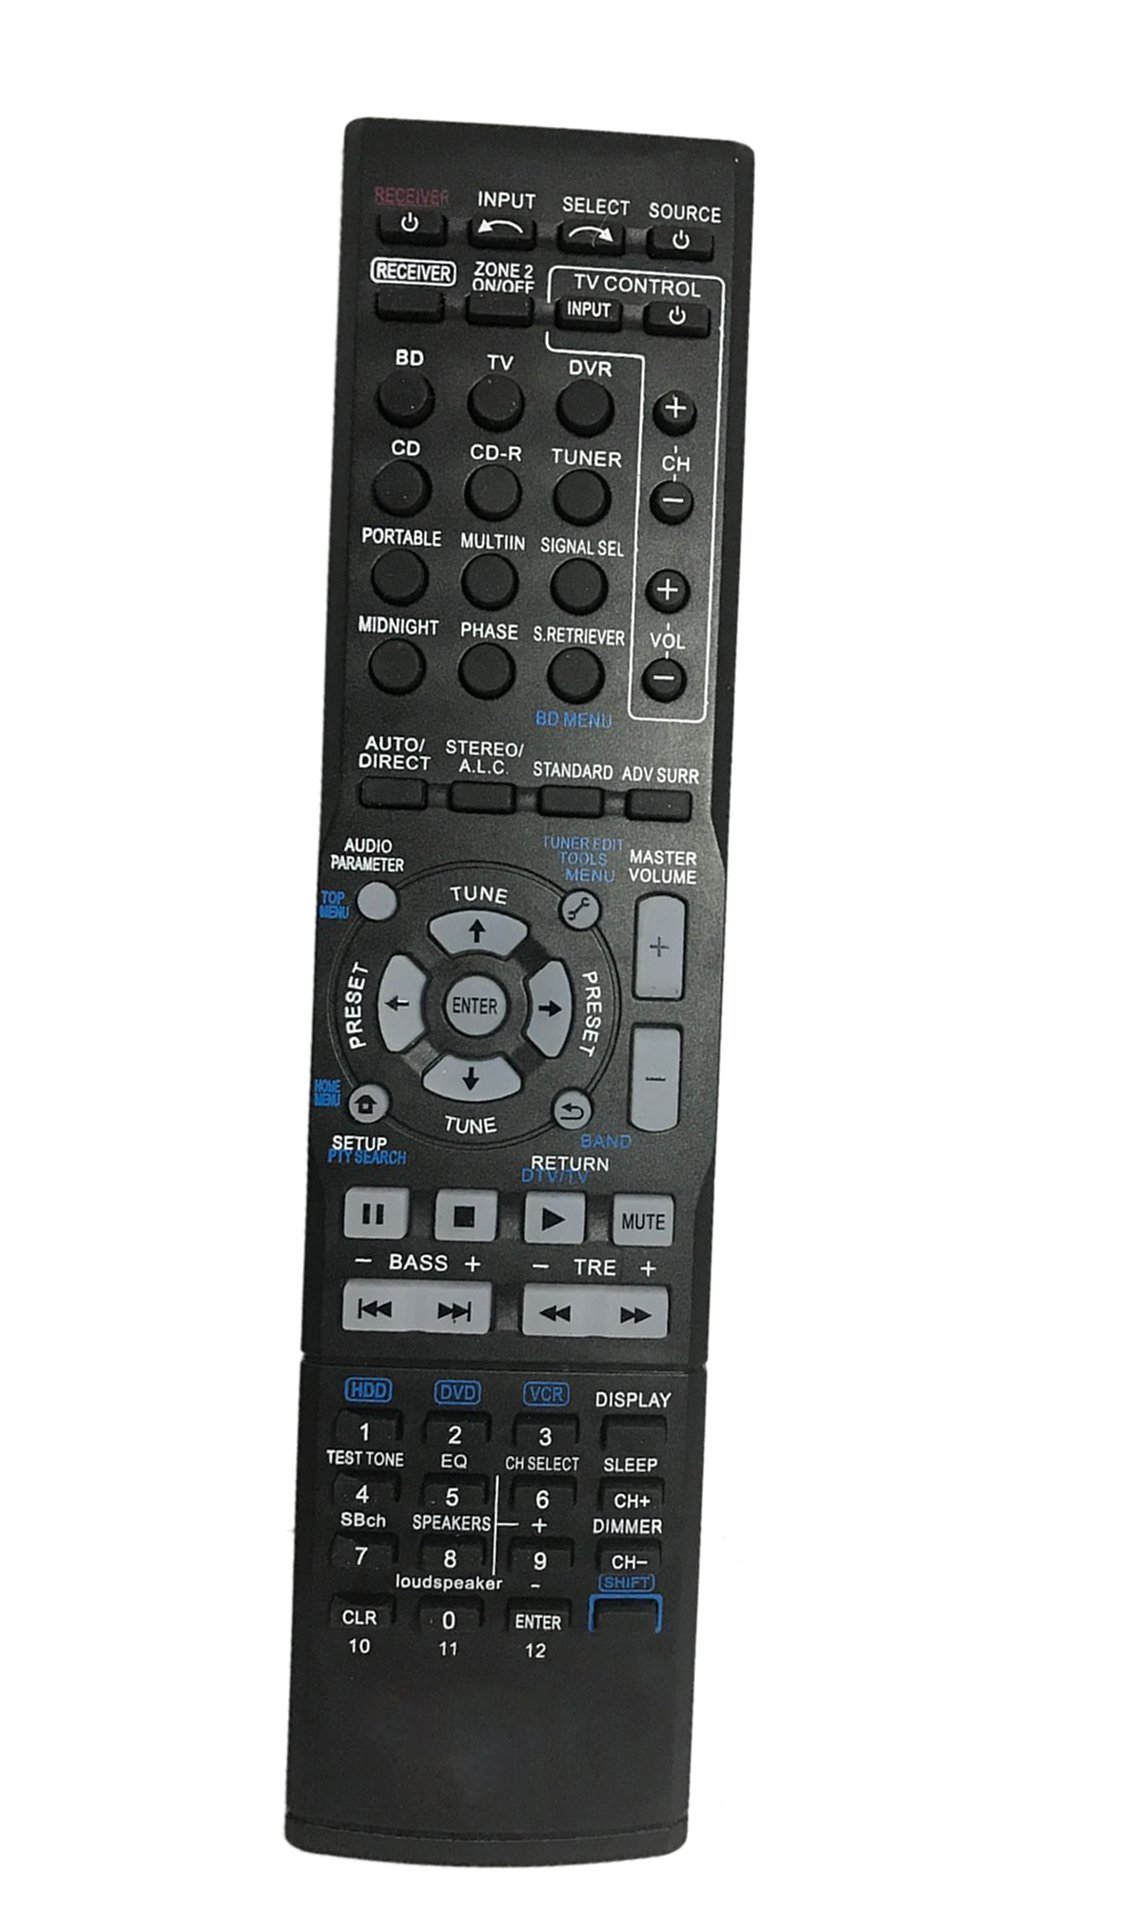 Replaced Remote Control Compatible for Pioneer VSX-520 AXD7632 VSX-522-K VSX-1024 VSX-1122-K Home Theater AV A/V Audio/Video Receiver System by JustFine